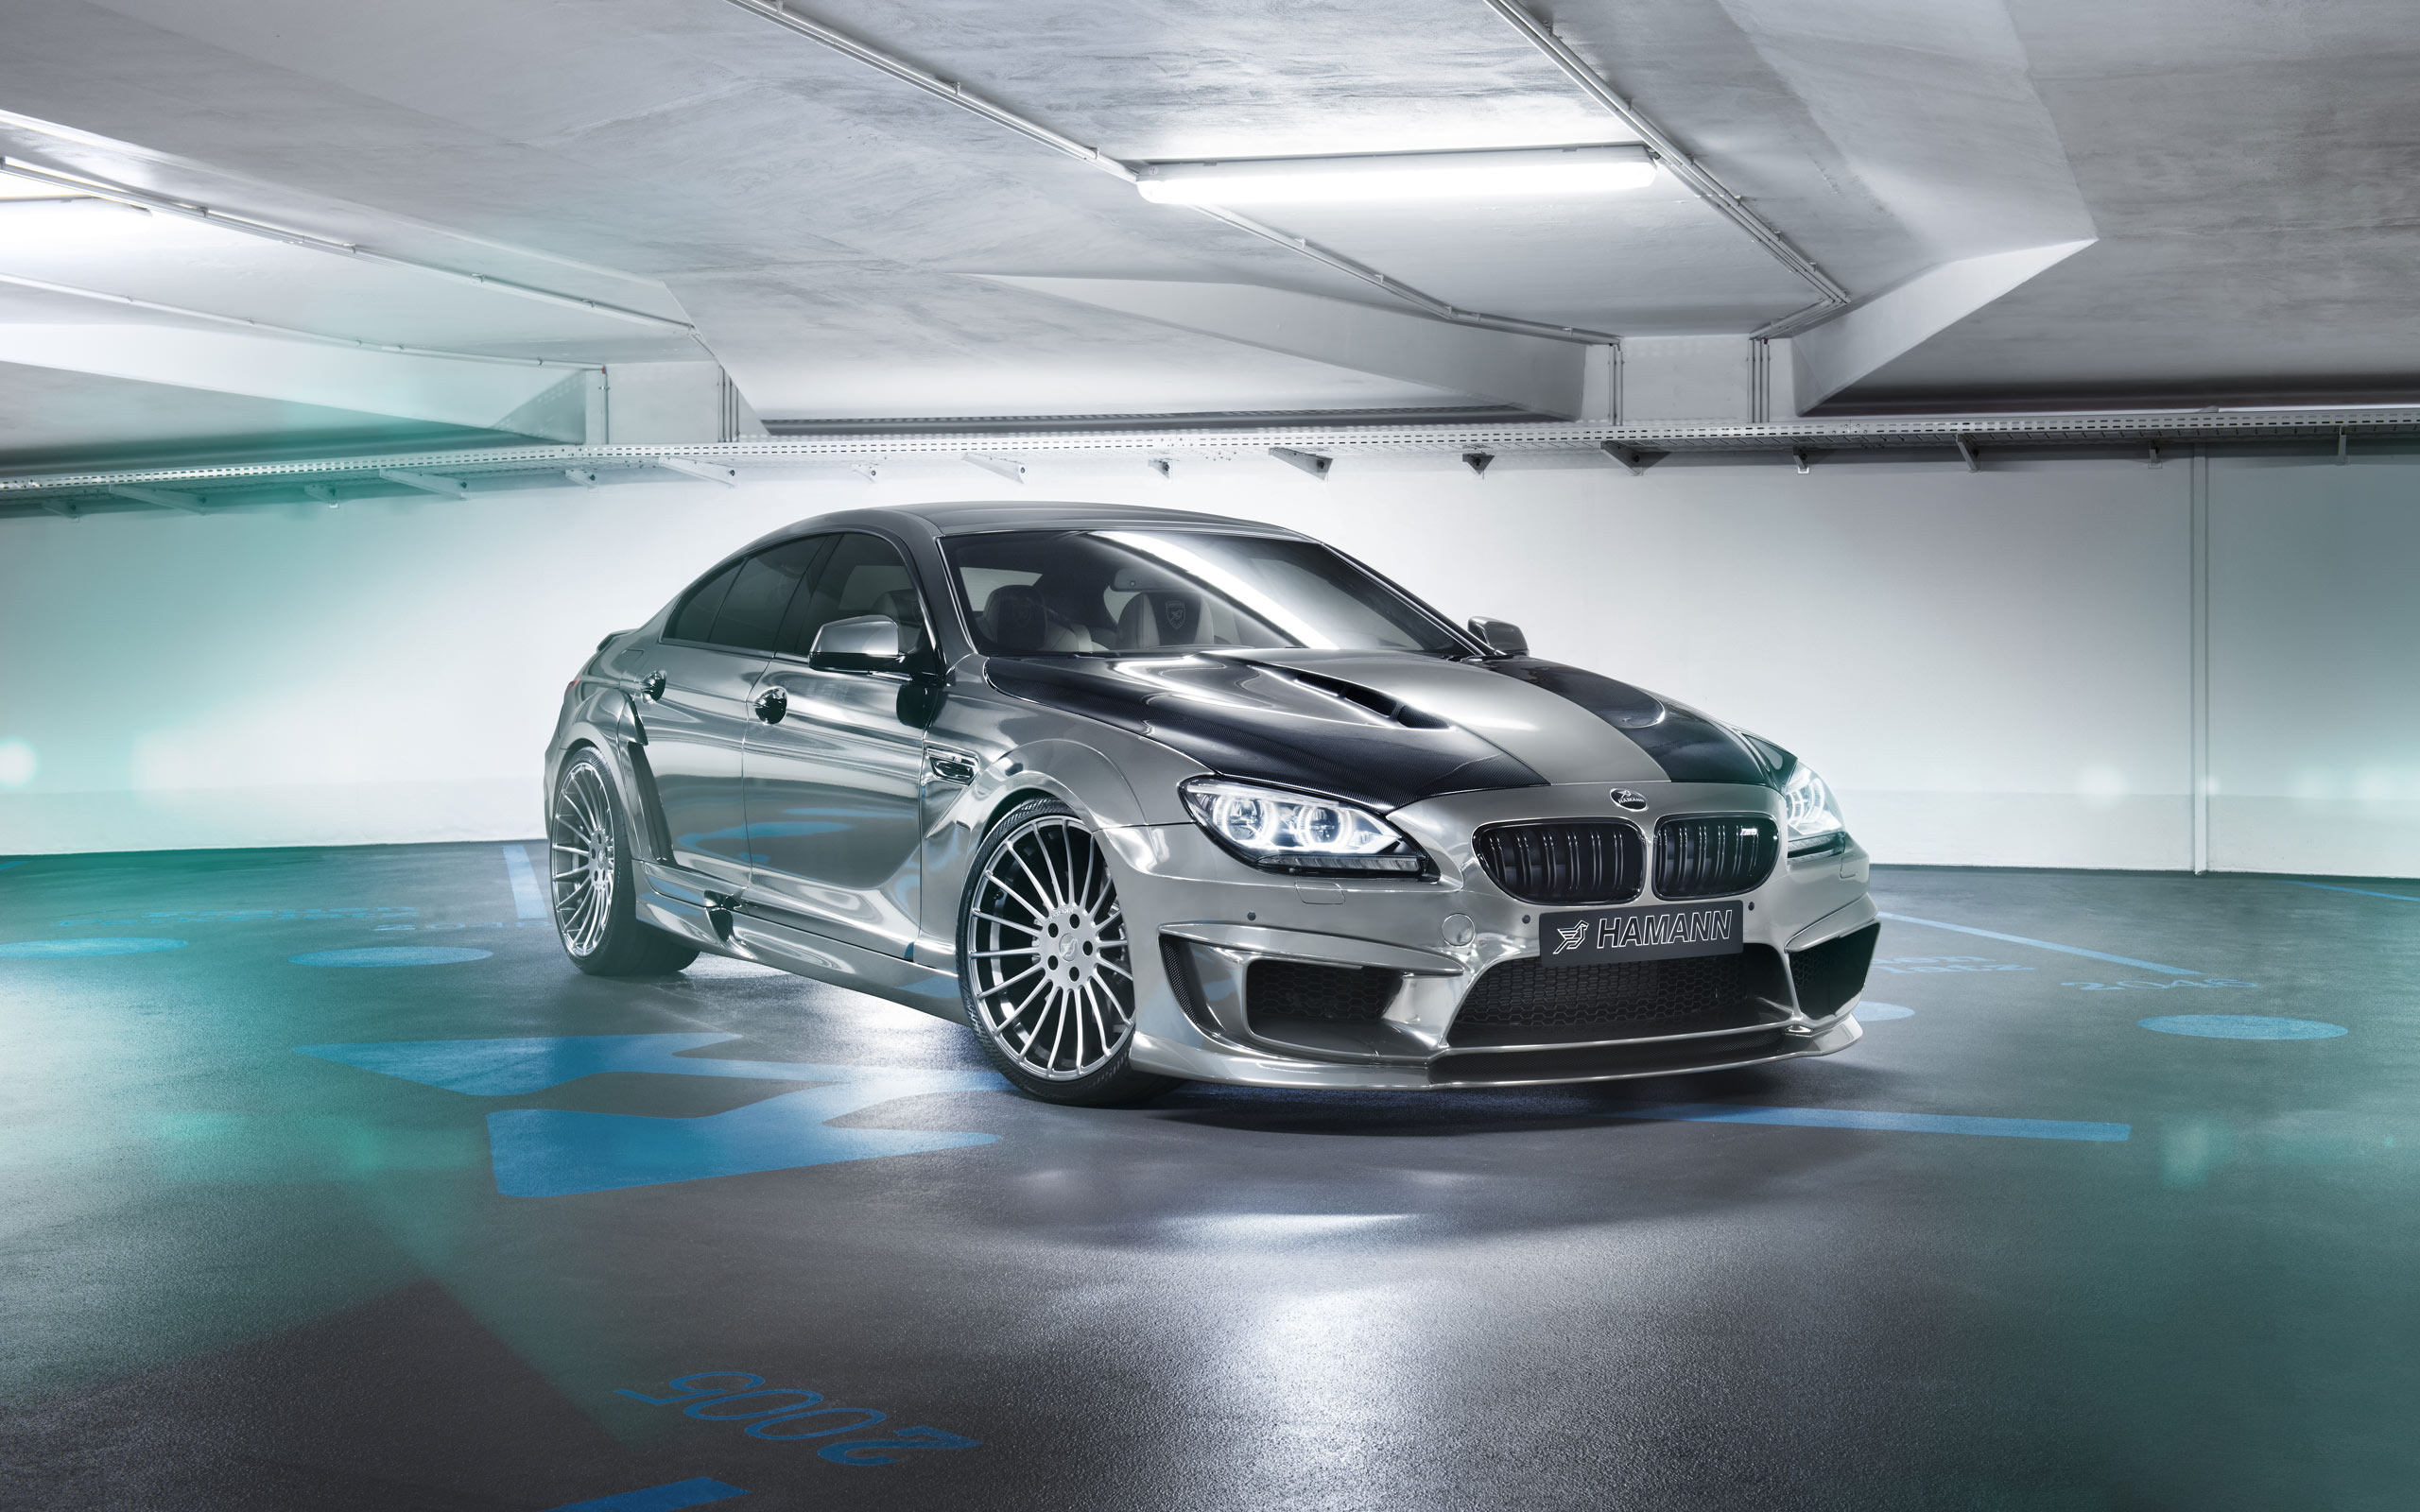 2014 bmw m6 gran coupe by hamann wallpaper hd car wallpapers. Black Bedroom Furniture Sets. Home Design Ideas